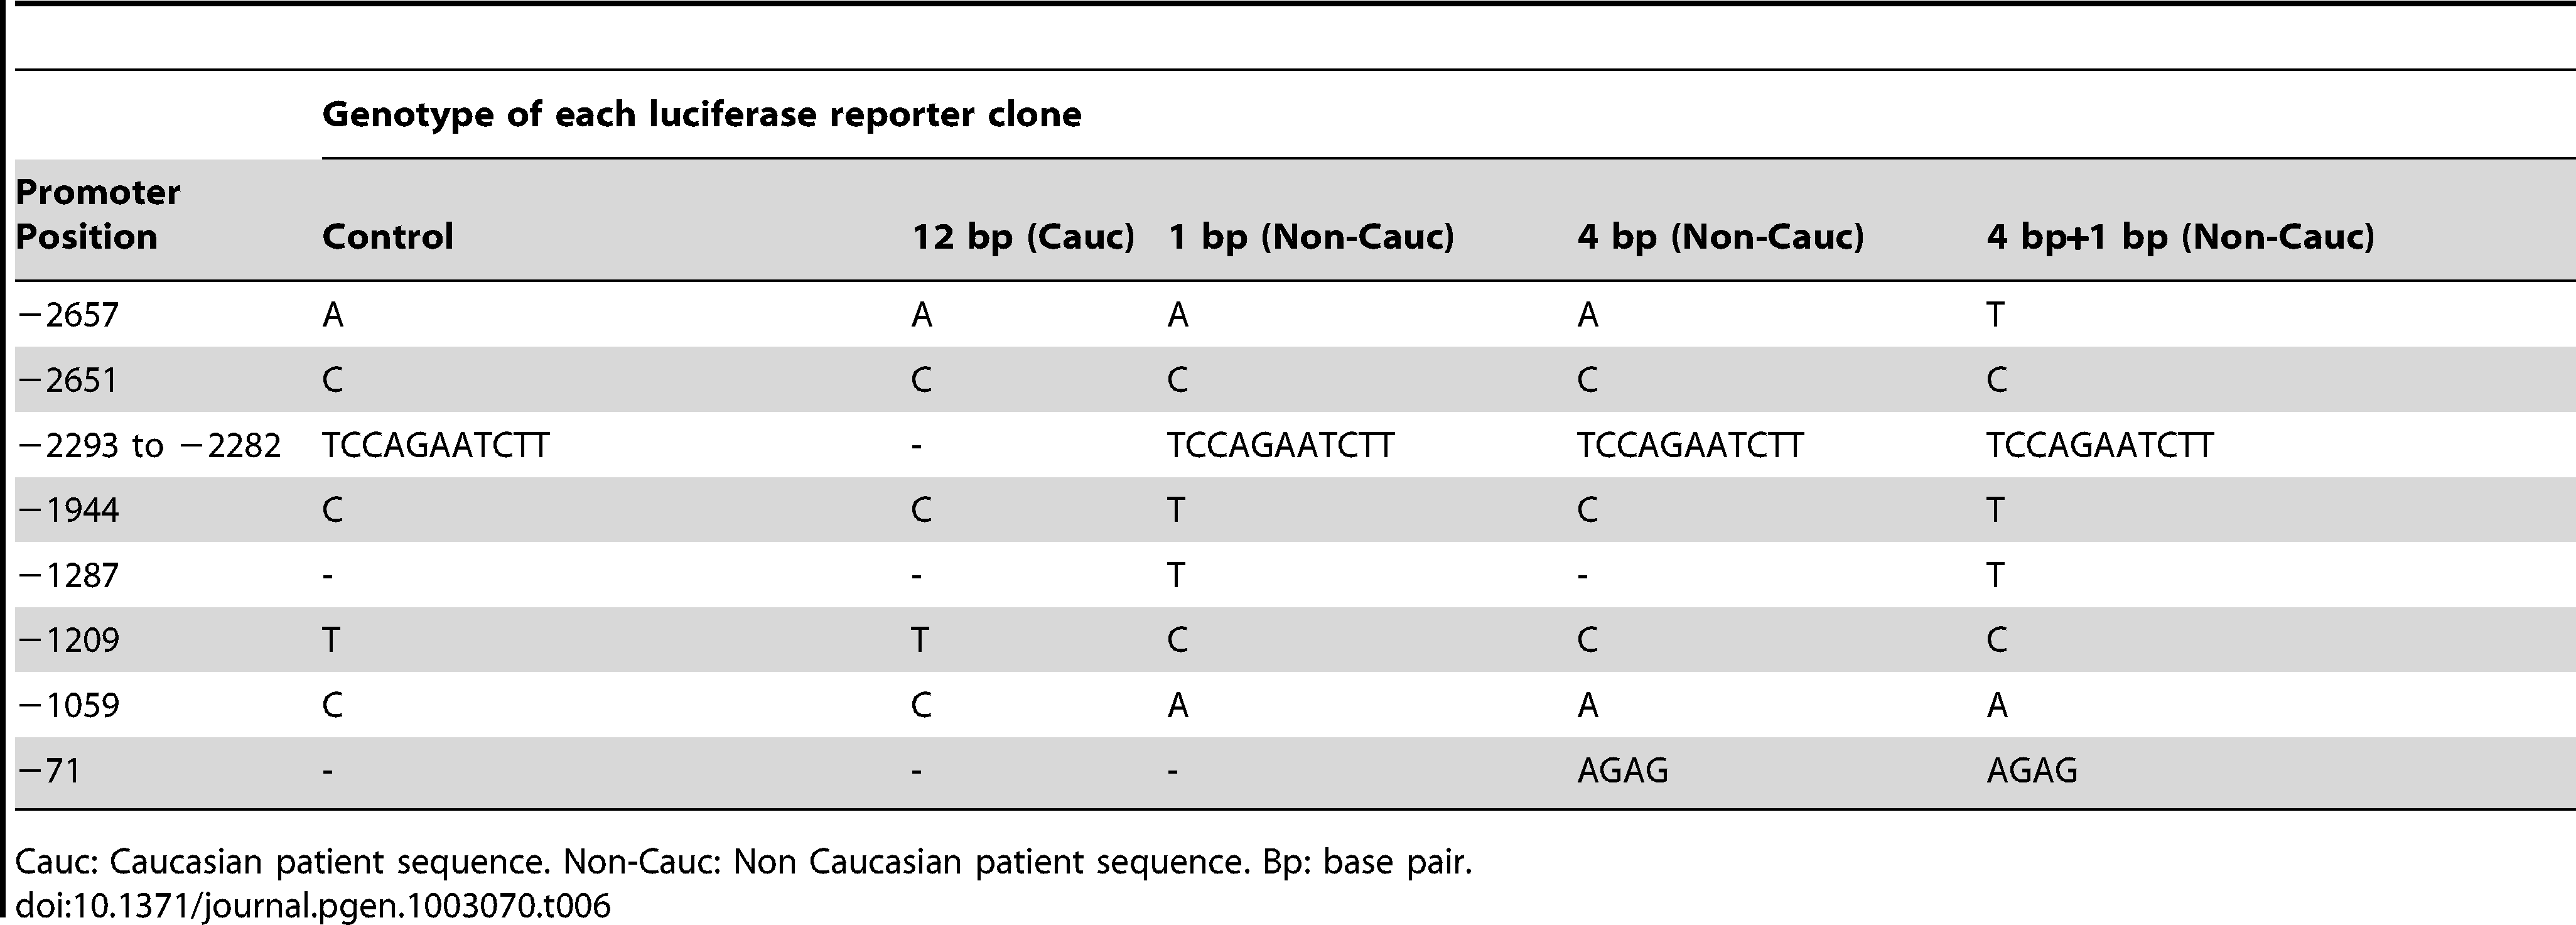 Sequences of BEEC patients and controls sub-cloned into the pGL3 luciferase vector.